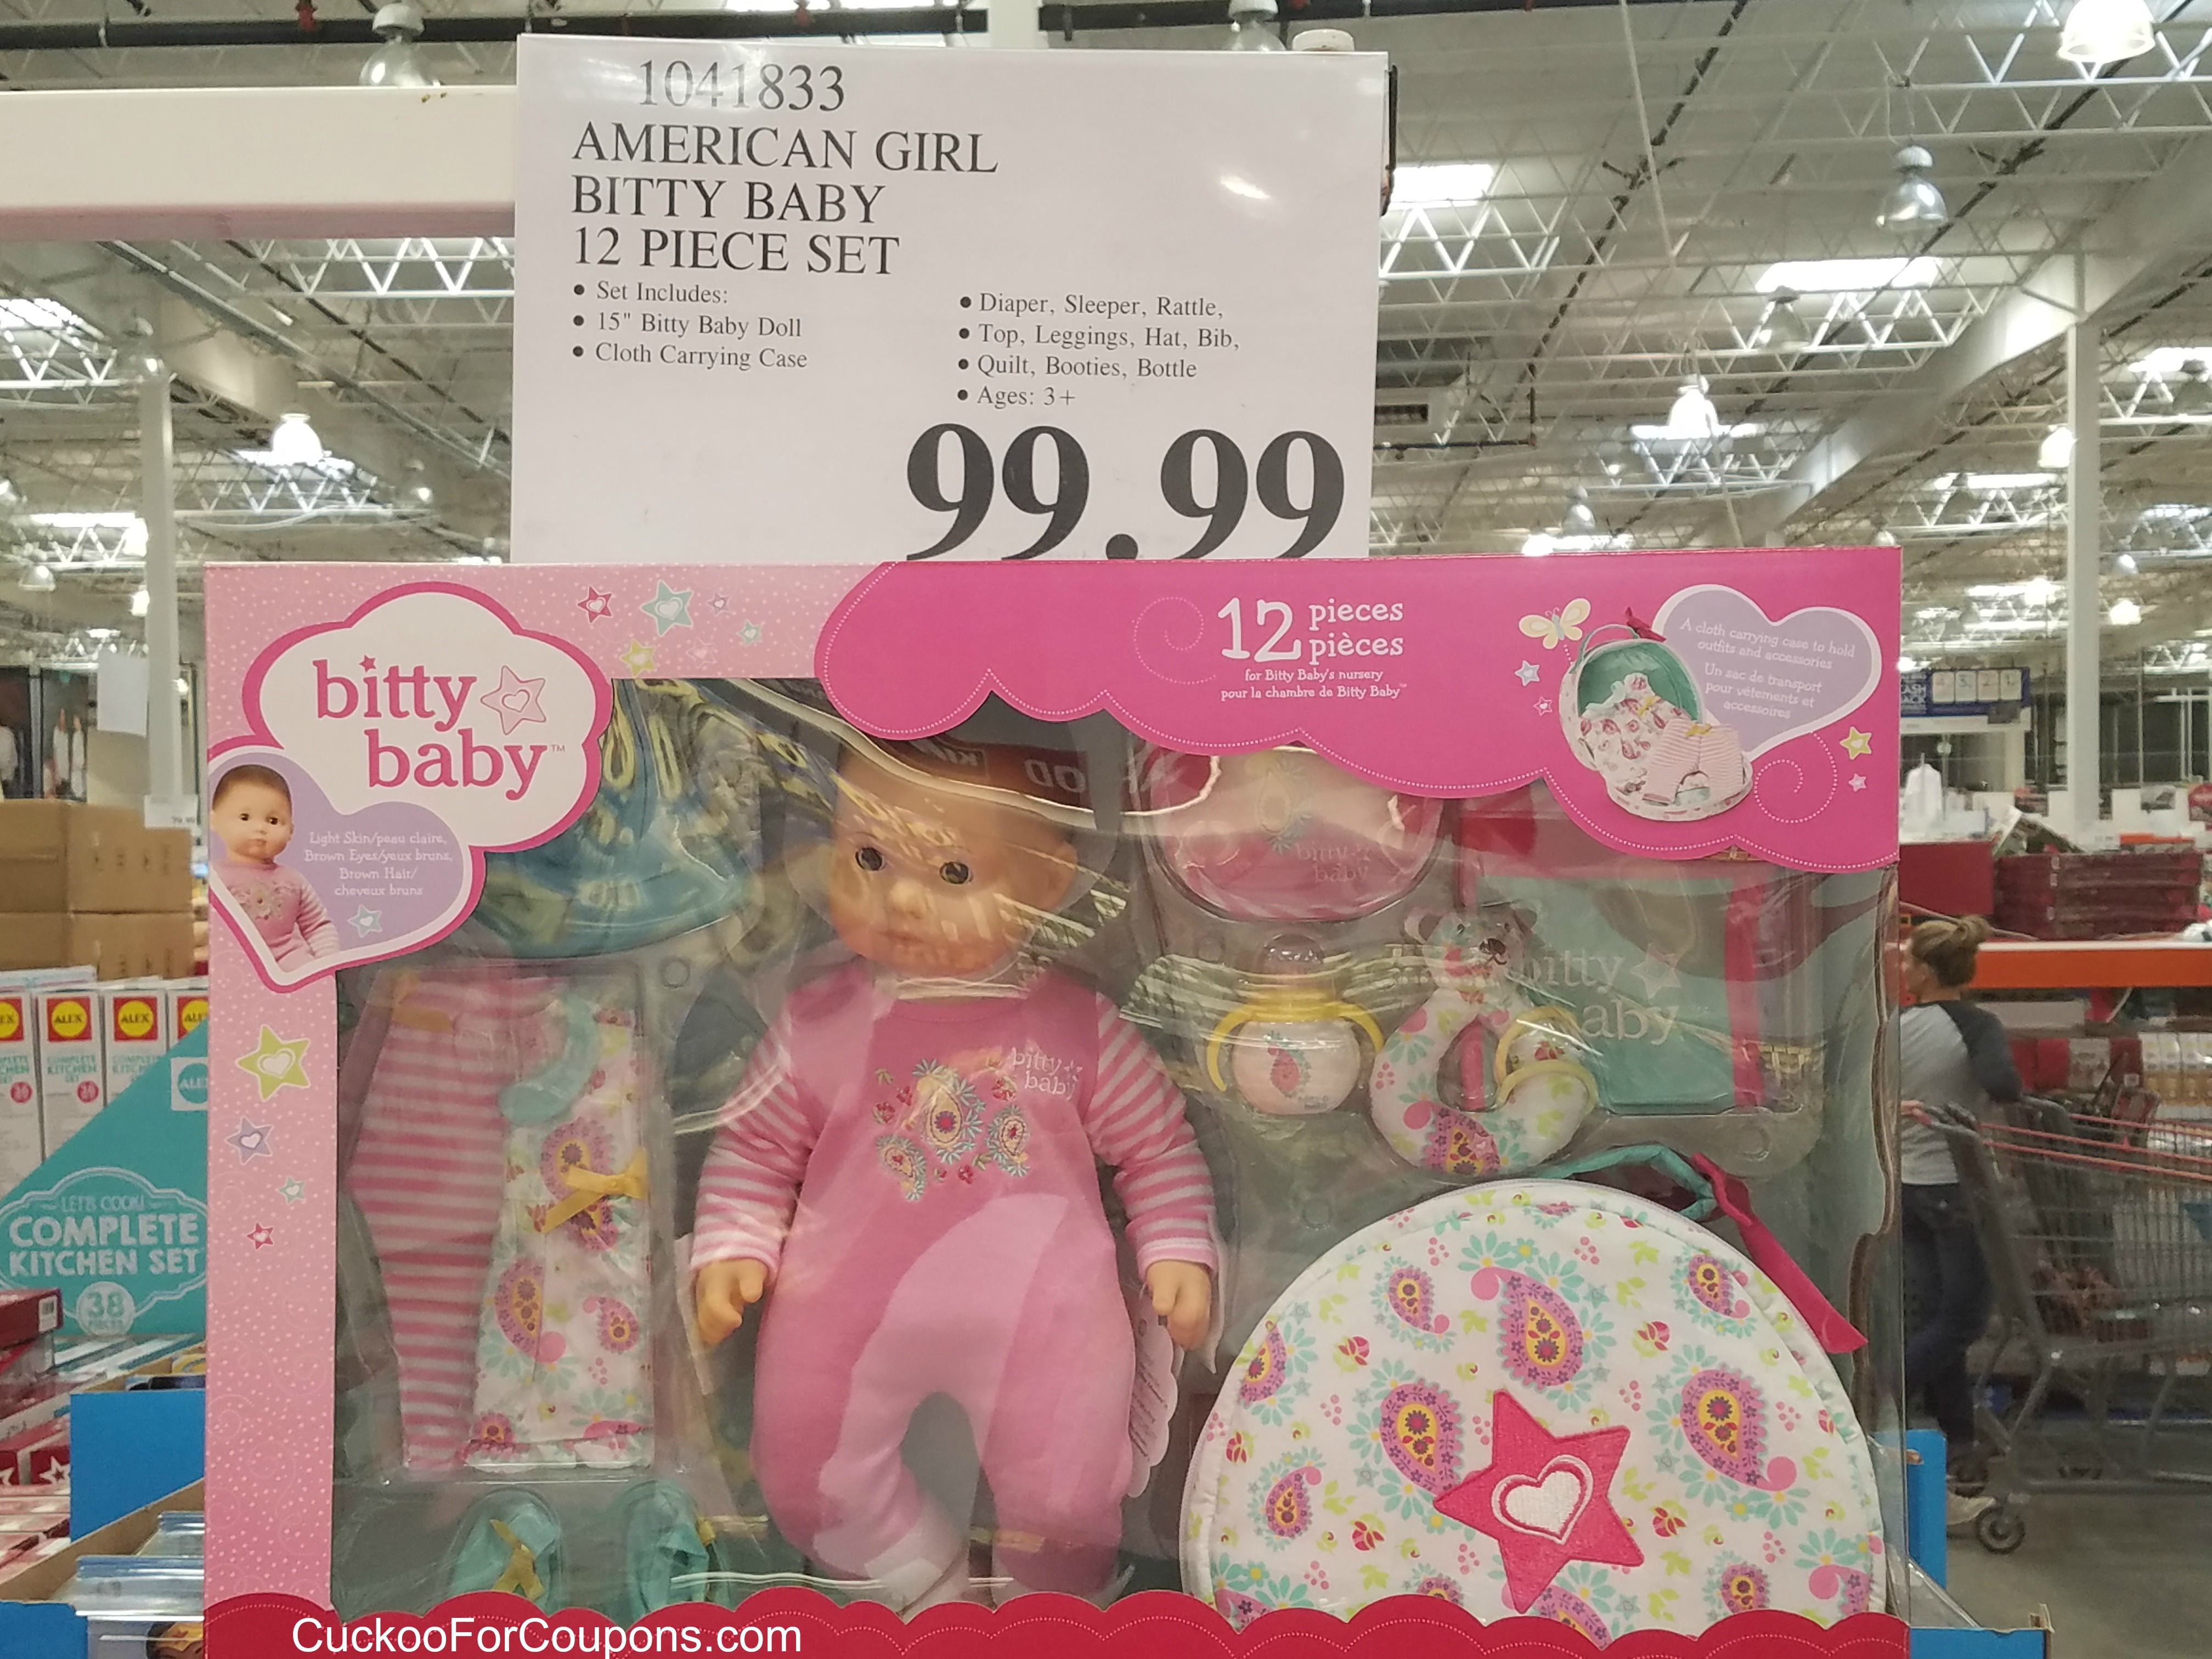 Cheap american girl dolls horse bitty baby at costco ag1 kristyandbryce Choice Image